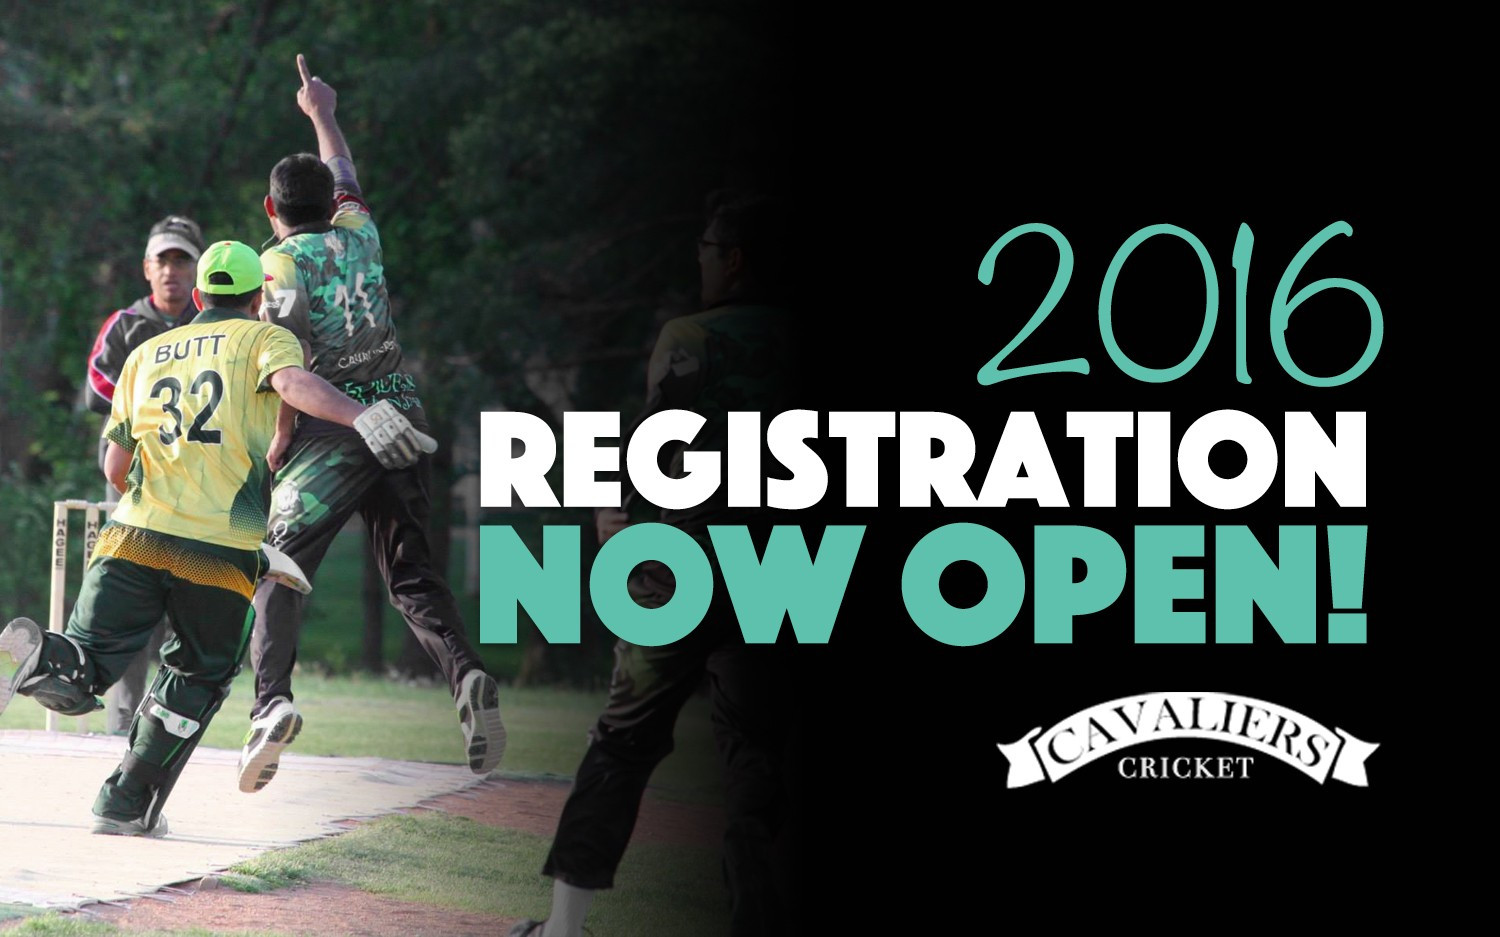 2016 Cavaliers Cricket Player Registration is NOW OPEN!